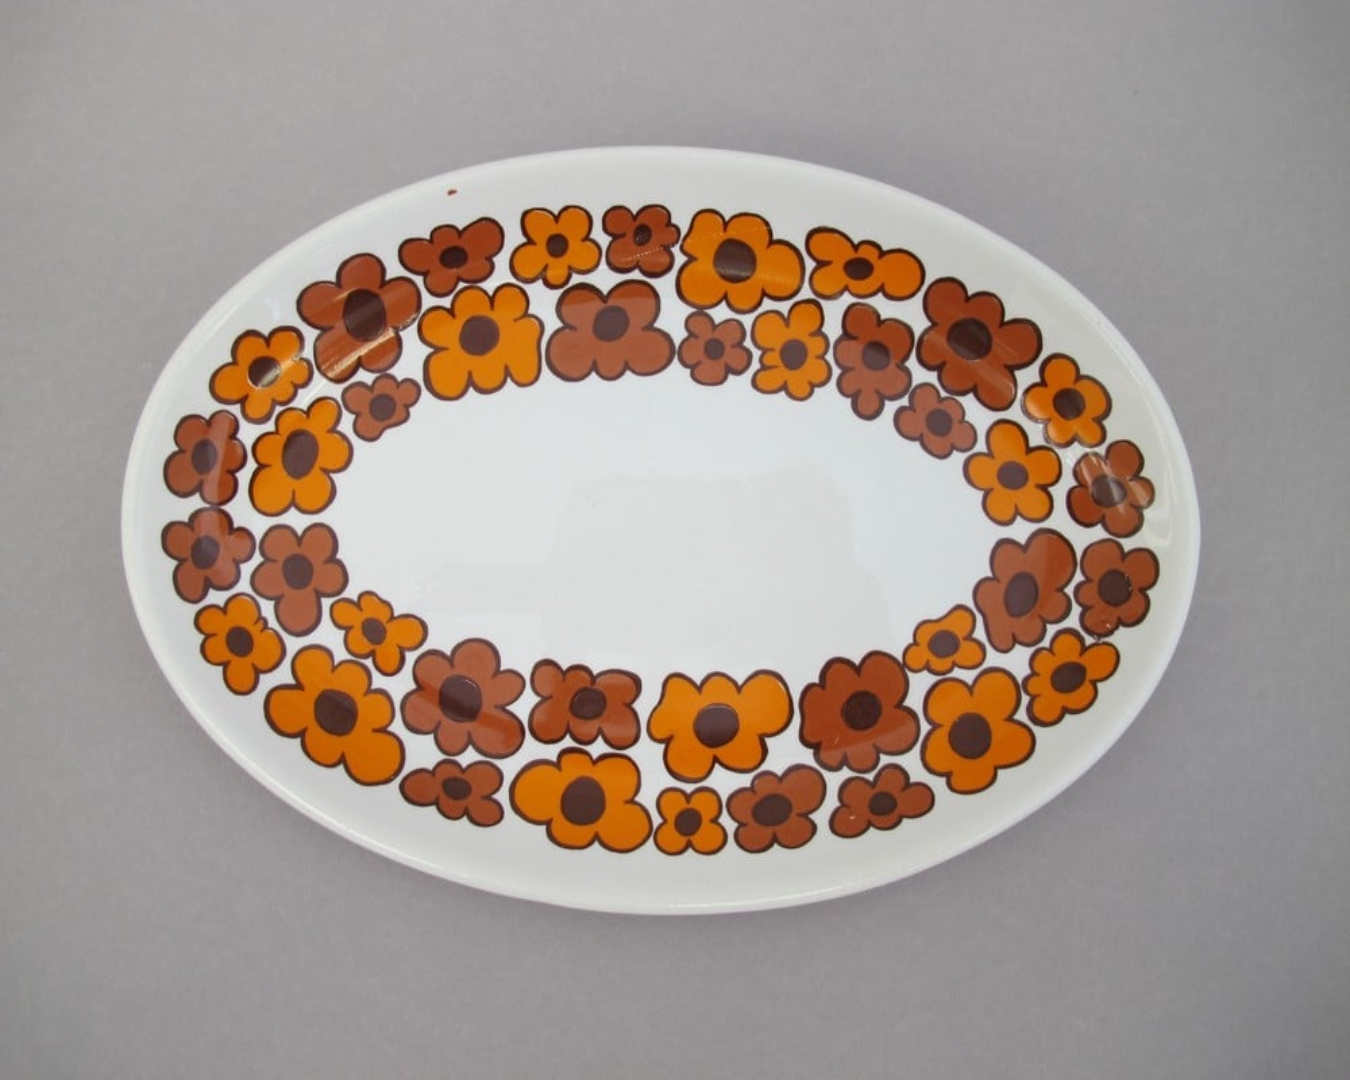 A ceramic plate decorated with joyful orange and dusky red flowers.